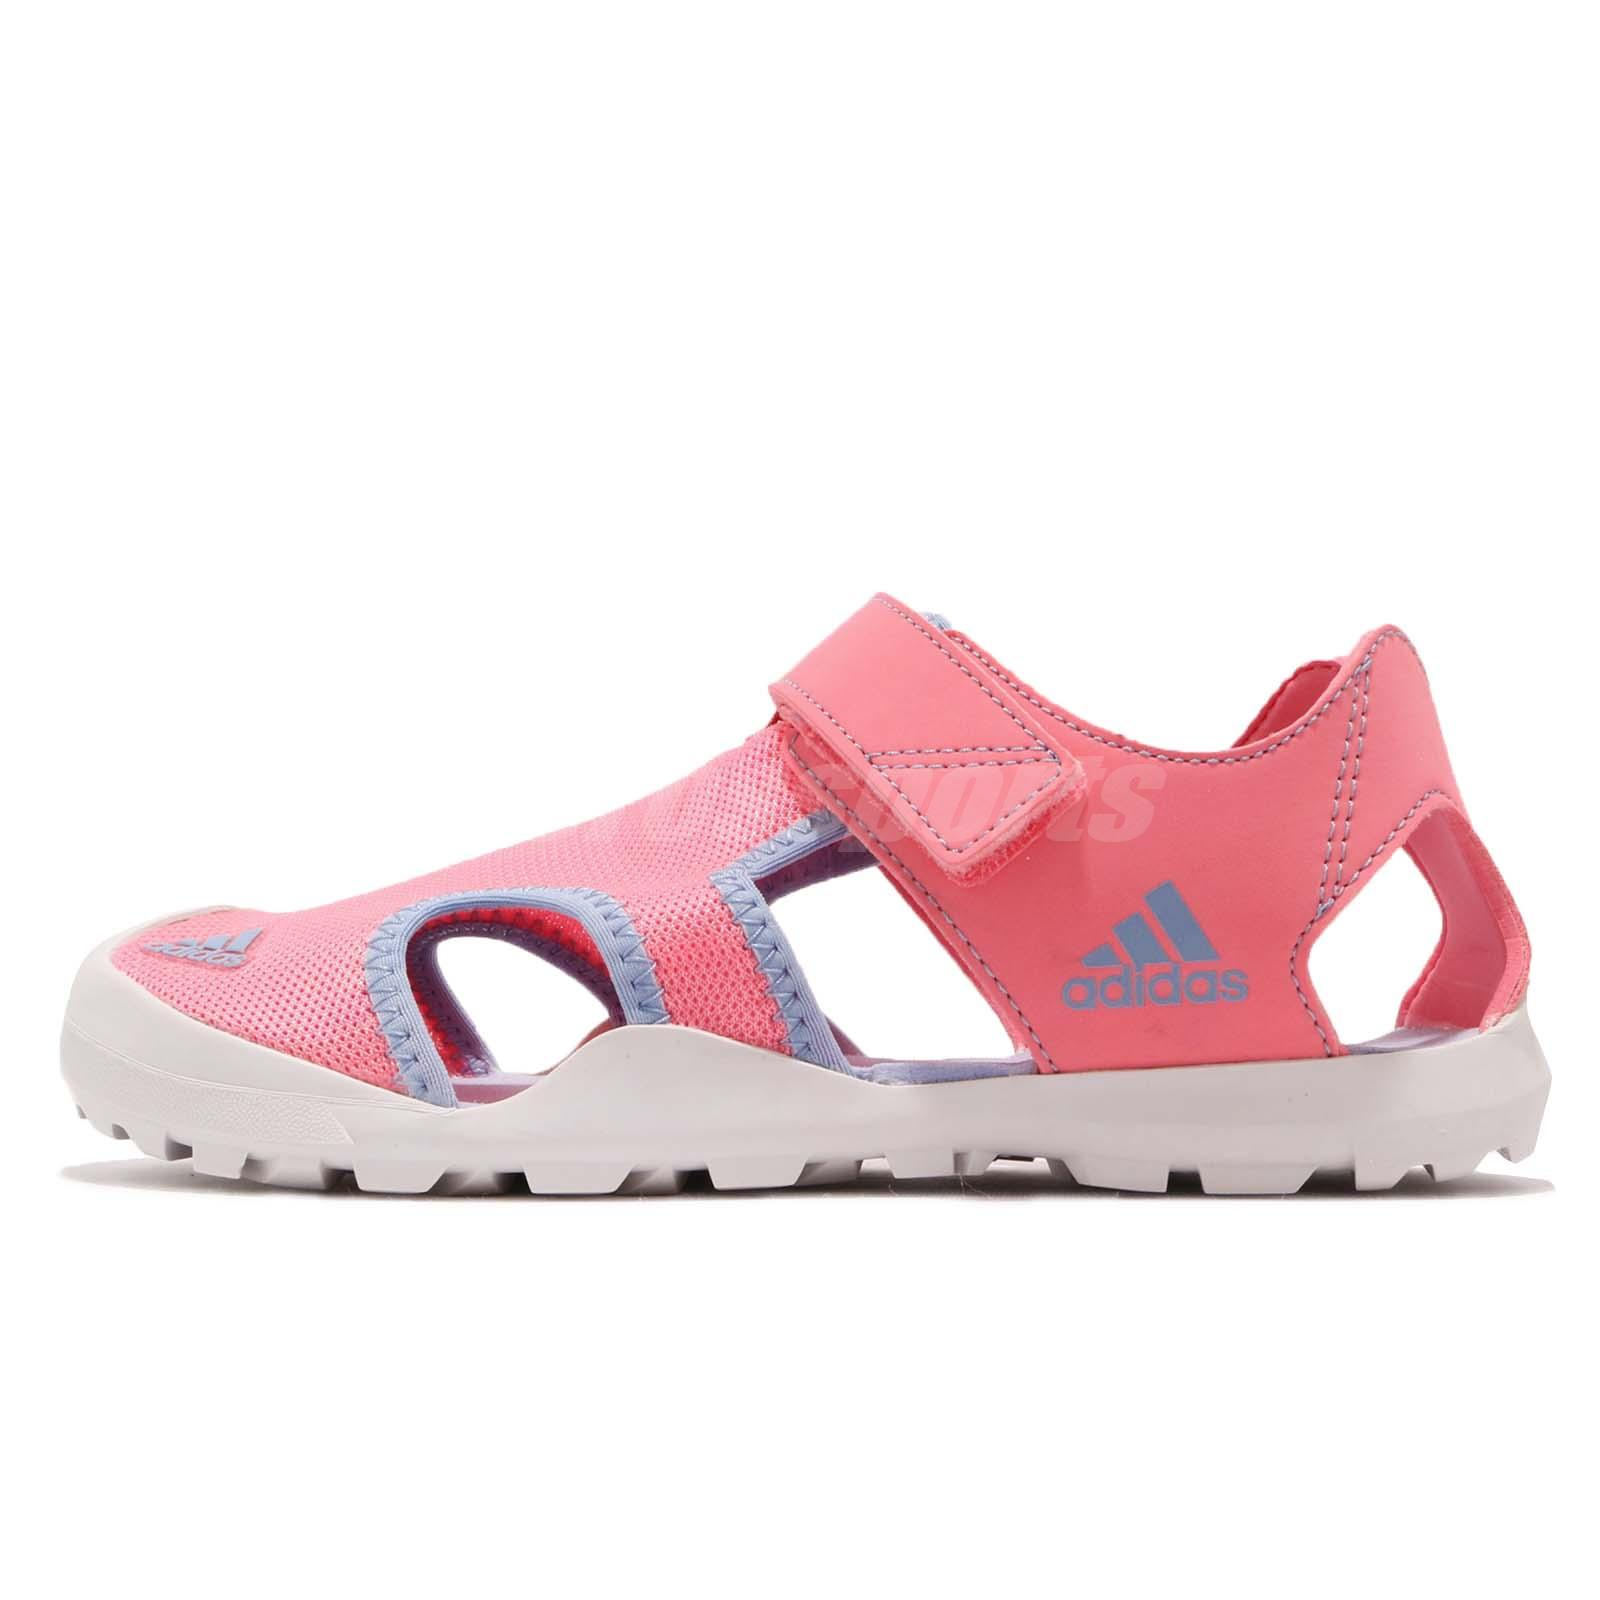 5ad02f684 adidas Captain Toey K Pink Blue Kid Junior Outdoor Sports Sandal Shoes  CM7640